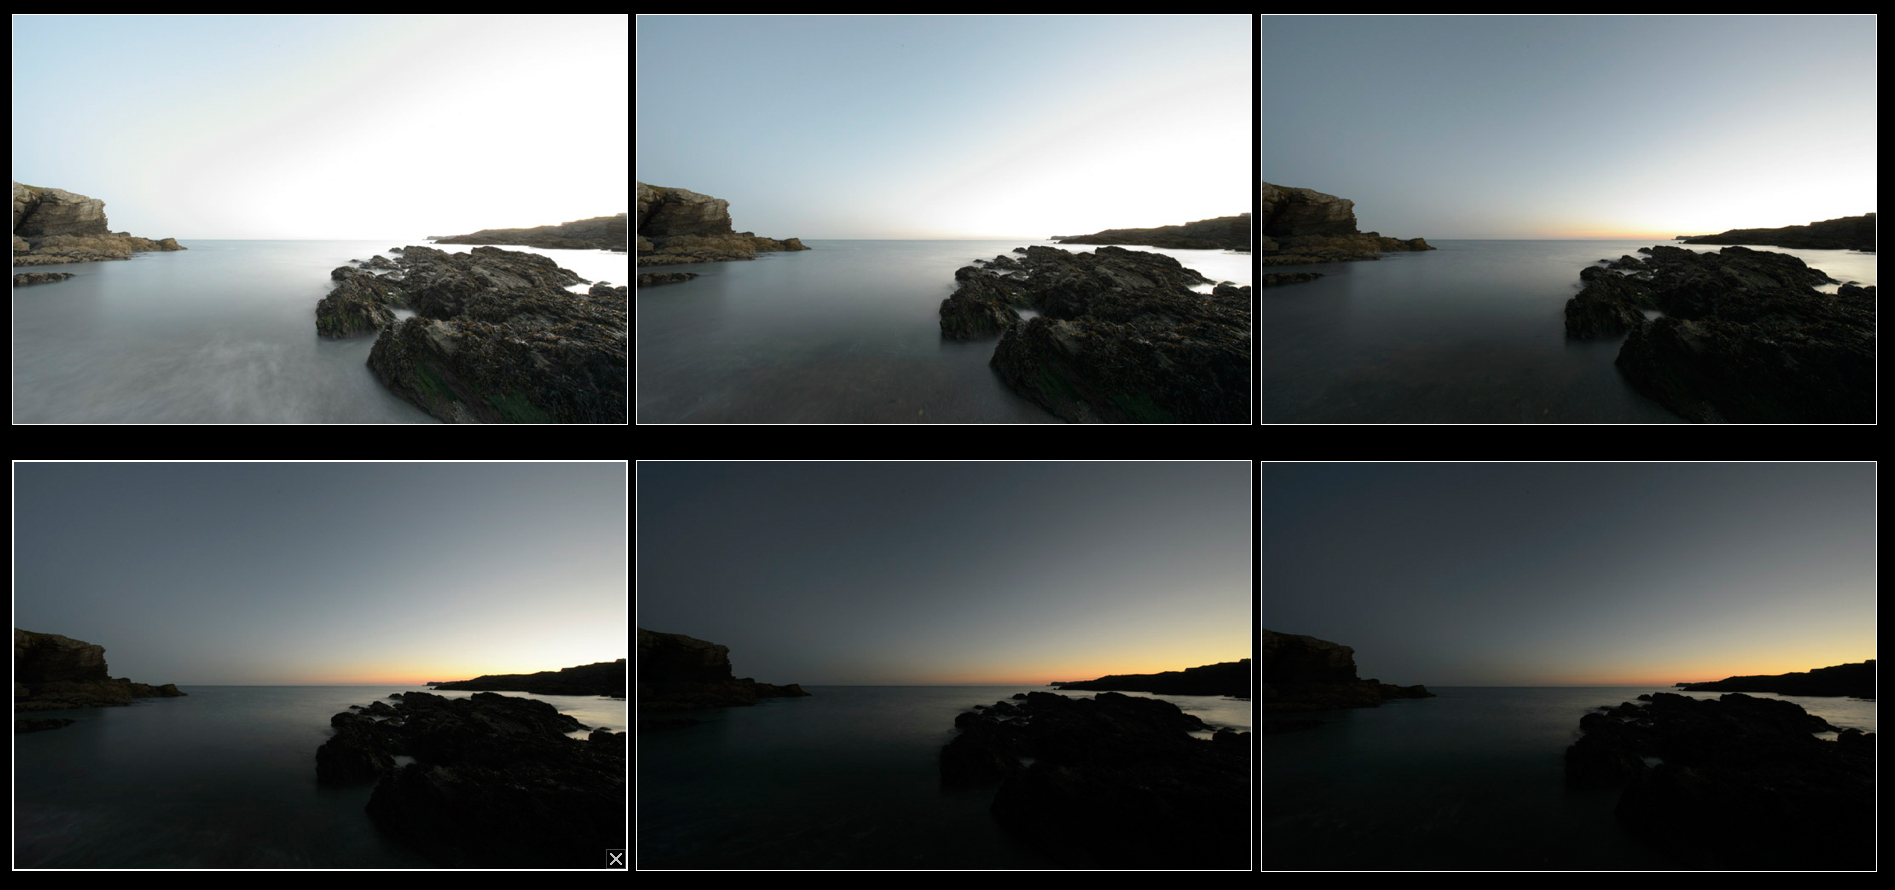 Seascape Photography Archives Andy Astburys Blogandy Lee Filters Sw150 Twilight Soft Grad Click To View Larger Image